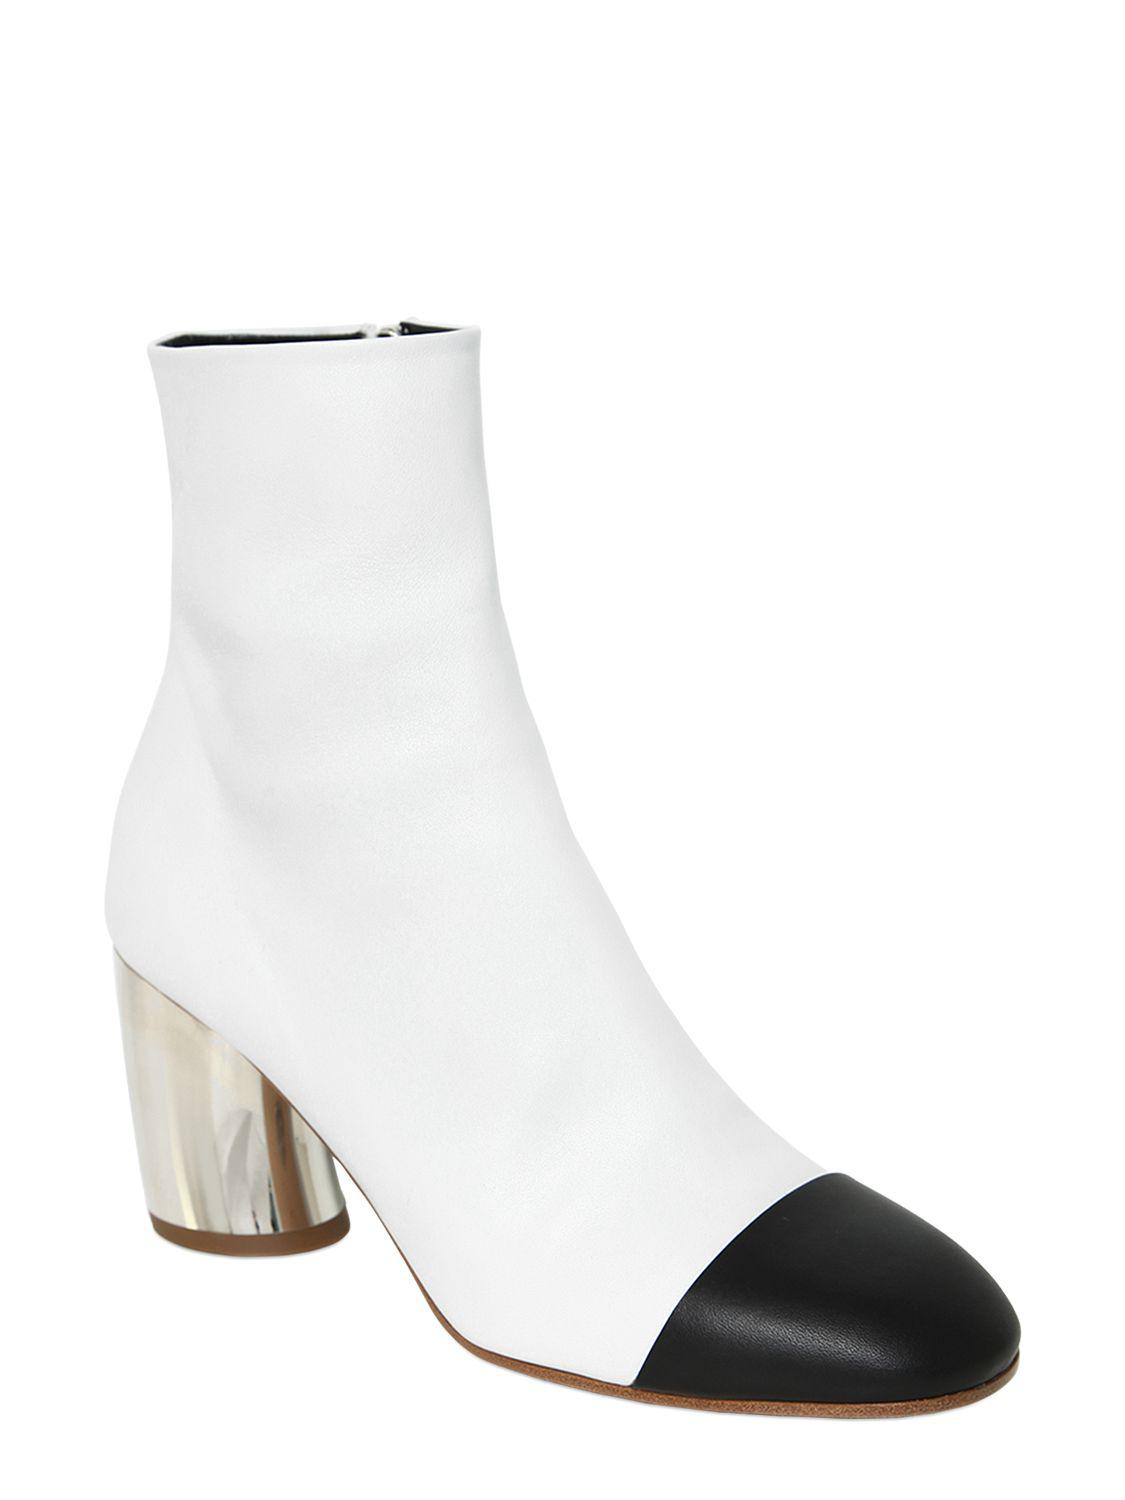 Proenza Schouler 70MM LEATHER ANKLE BOOTS